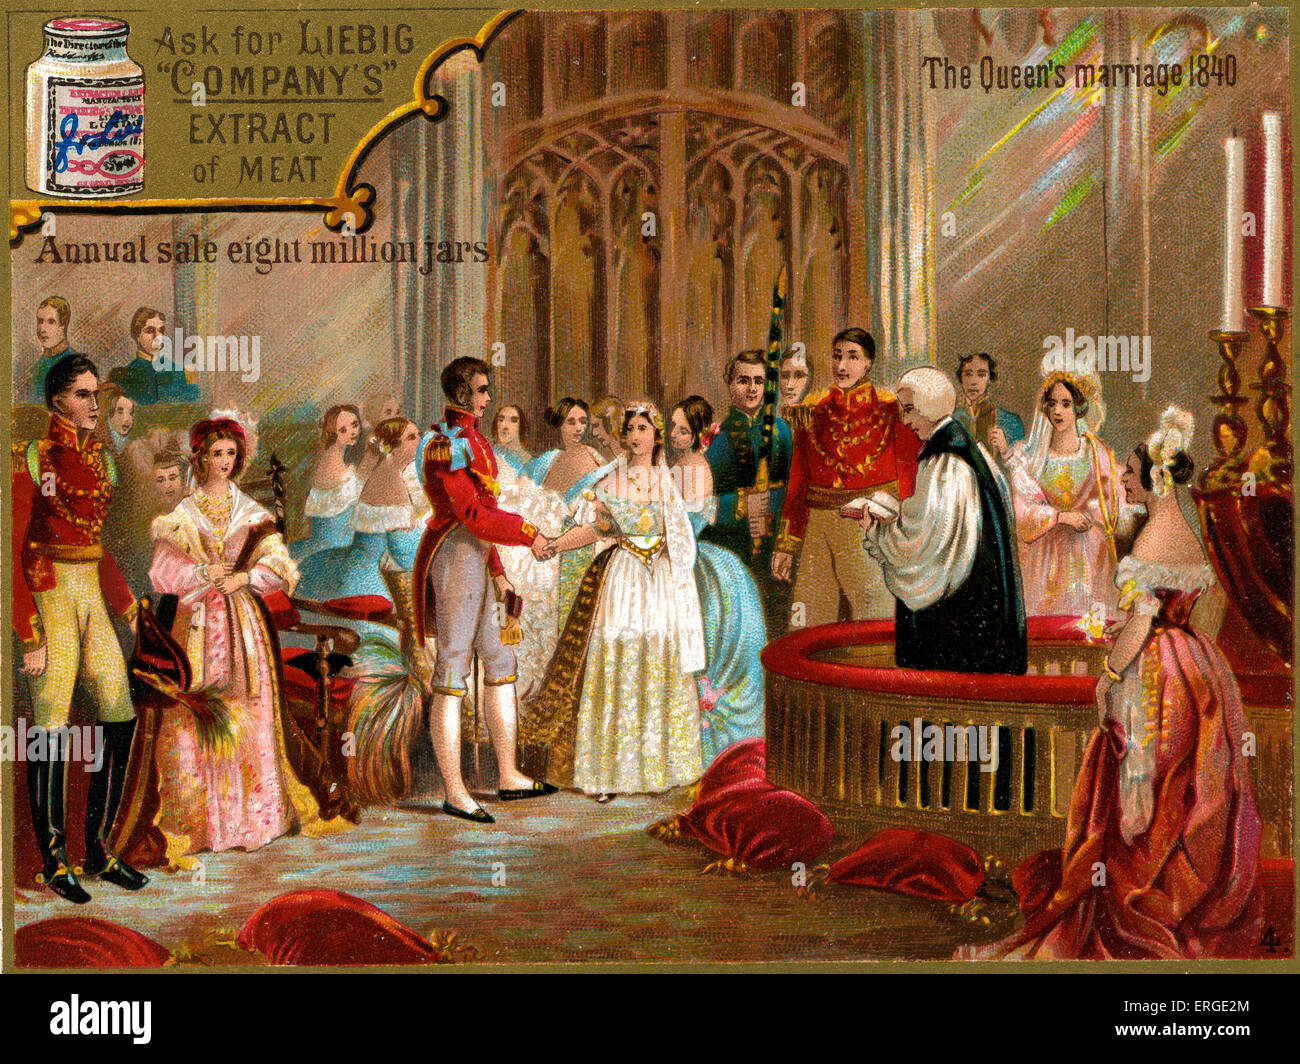 The marriage of Queen Victoria to Prince Albert. Caption reads: 'The Queen's marriage 1840'. Liebig - Stock Image